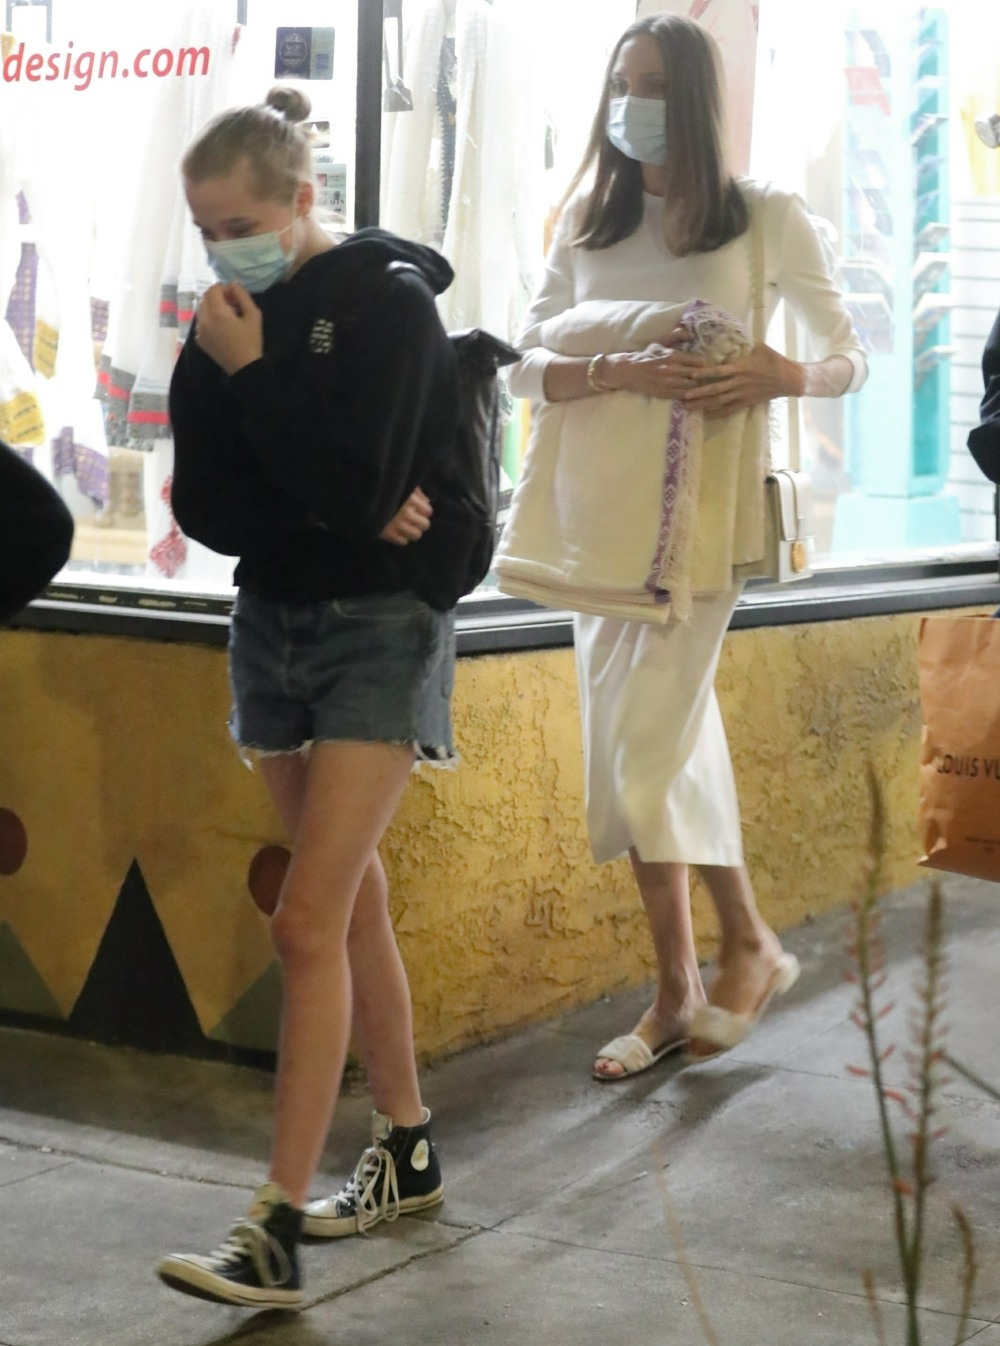 Angelina Jolie takes her daughters shopping at Ethiopian Design in LA